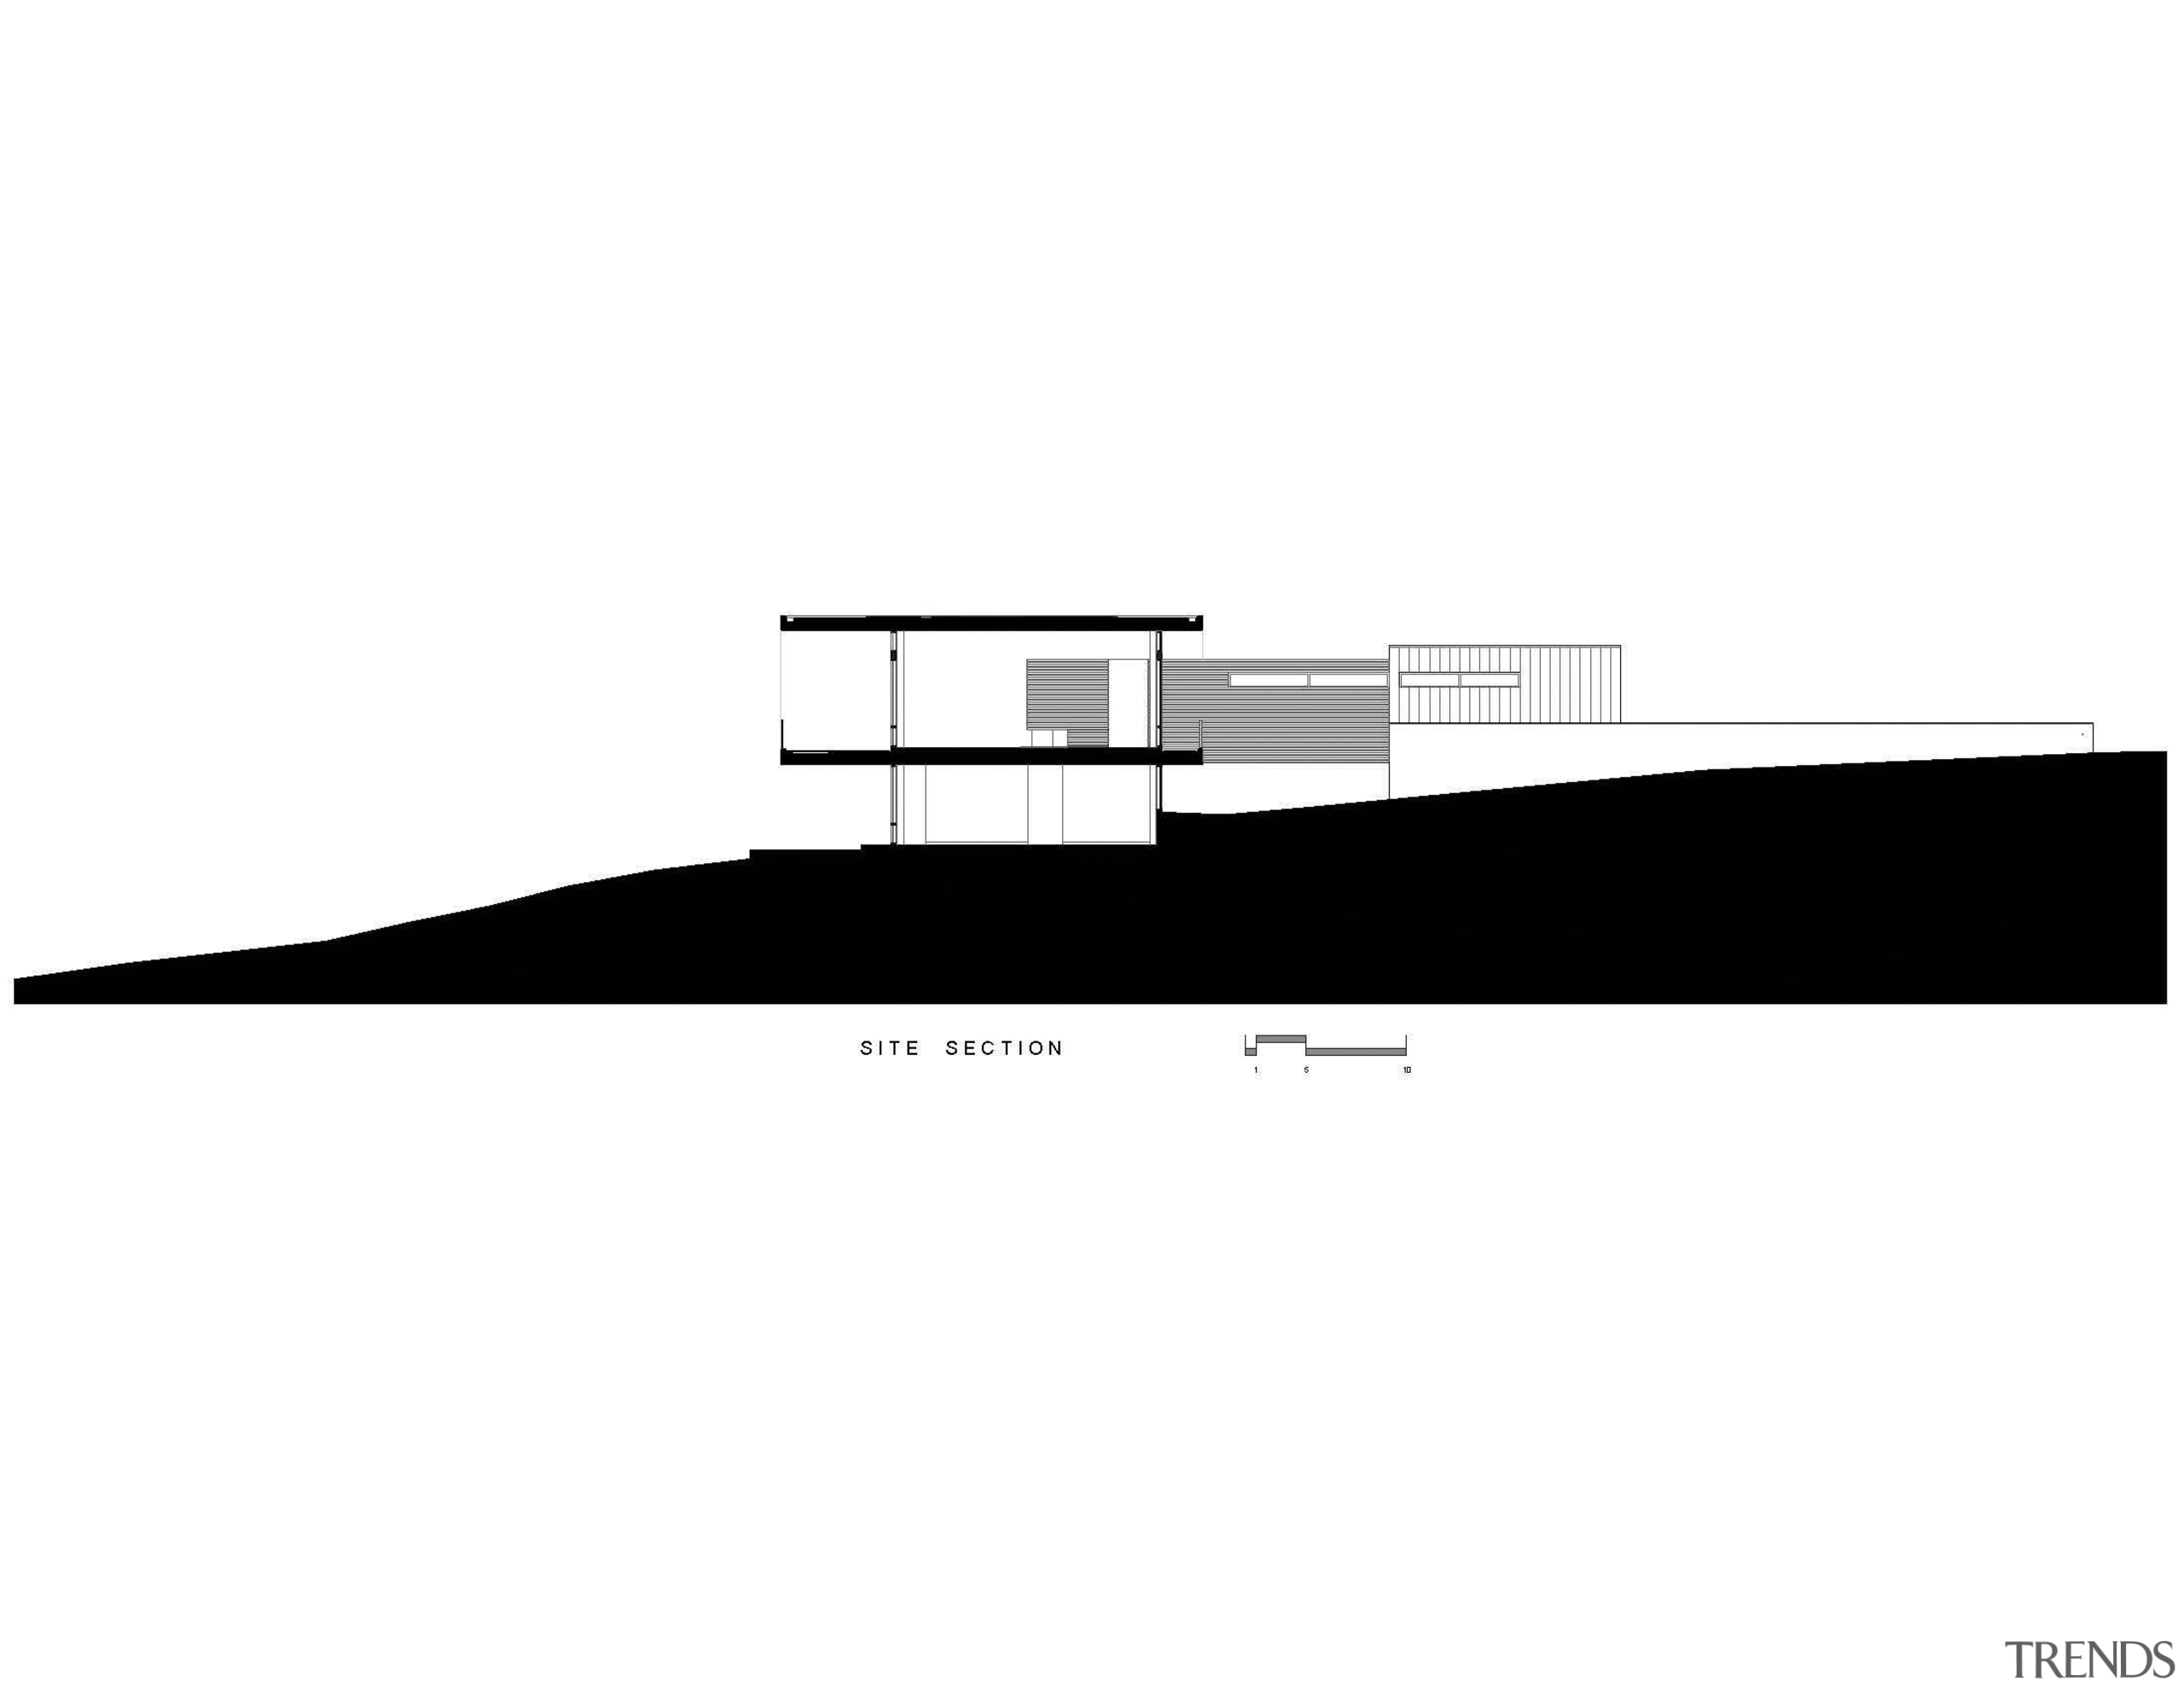 This diagram shows how the house relates to angle, area, black and white, design, diagram, elevation, font, line, product design, text, white